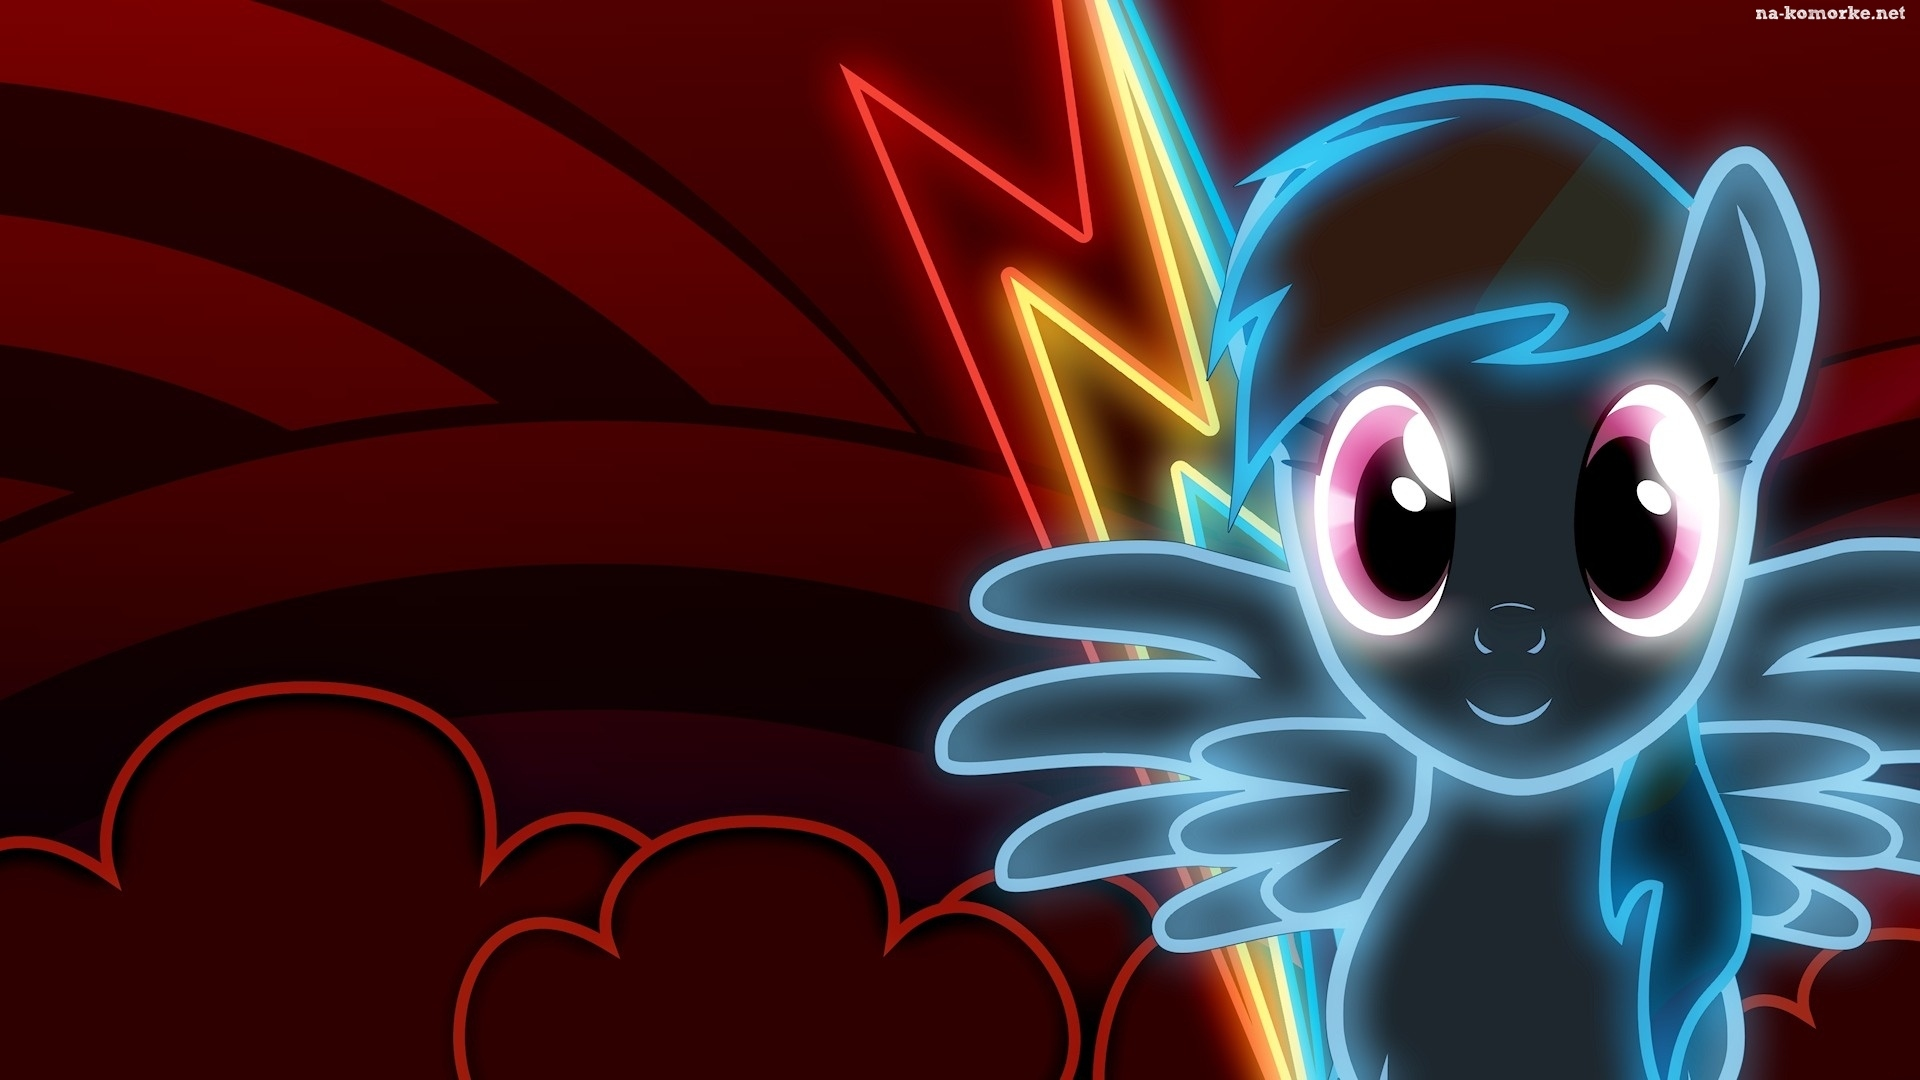 Little Pony Przyja Magia Rainbow Dash Kom